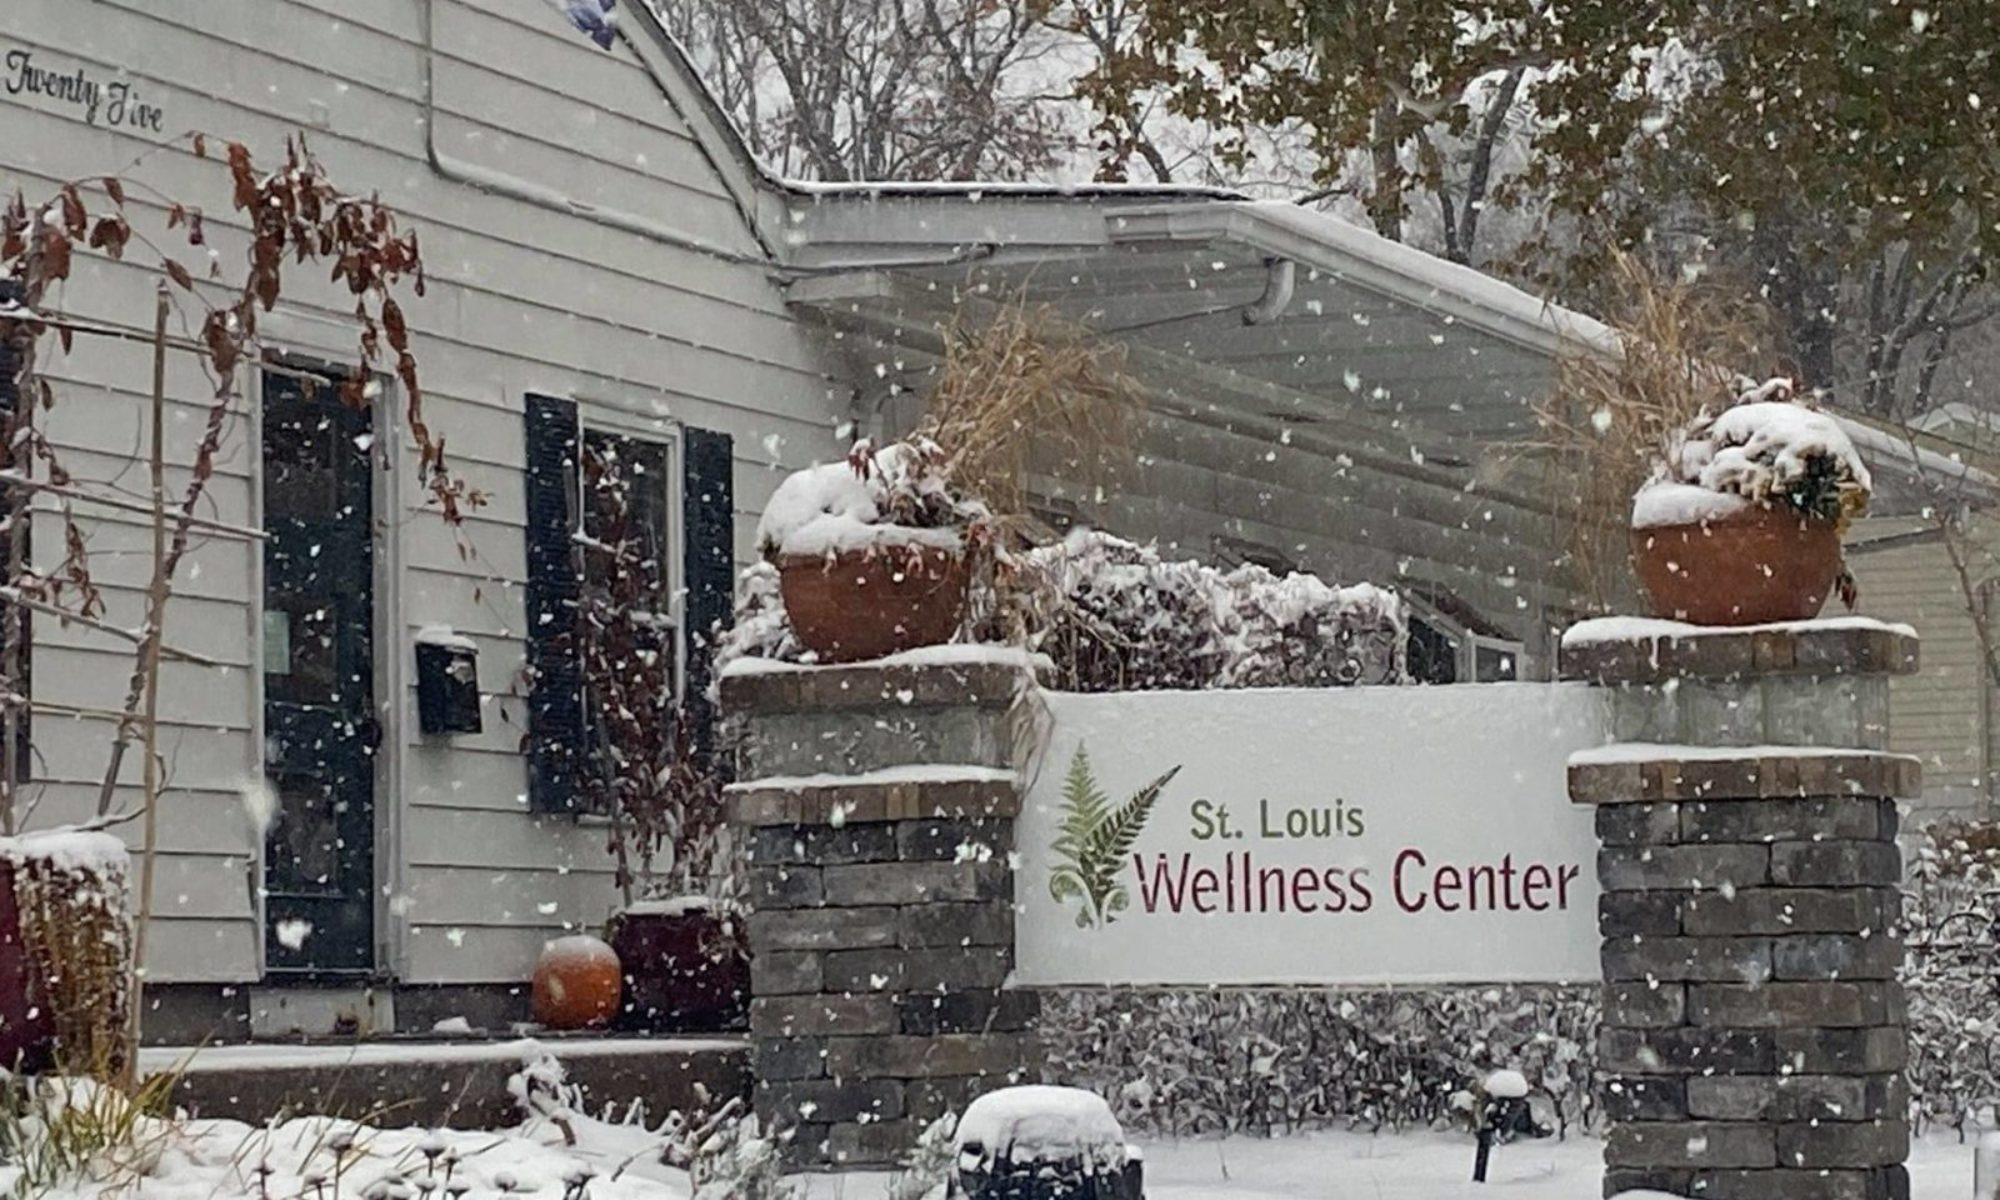 St. Louis Wellness Center